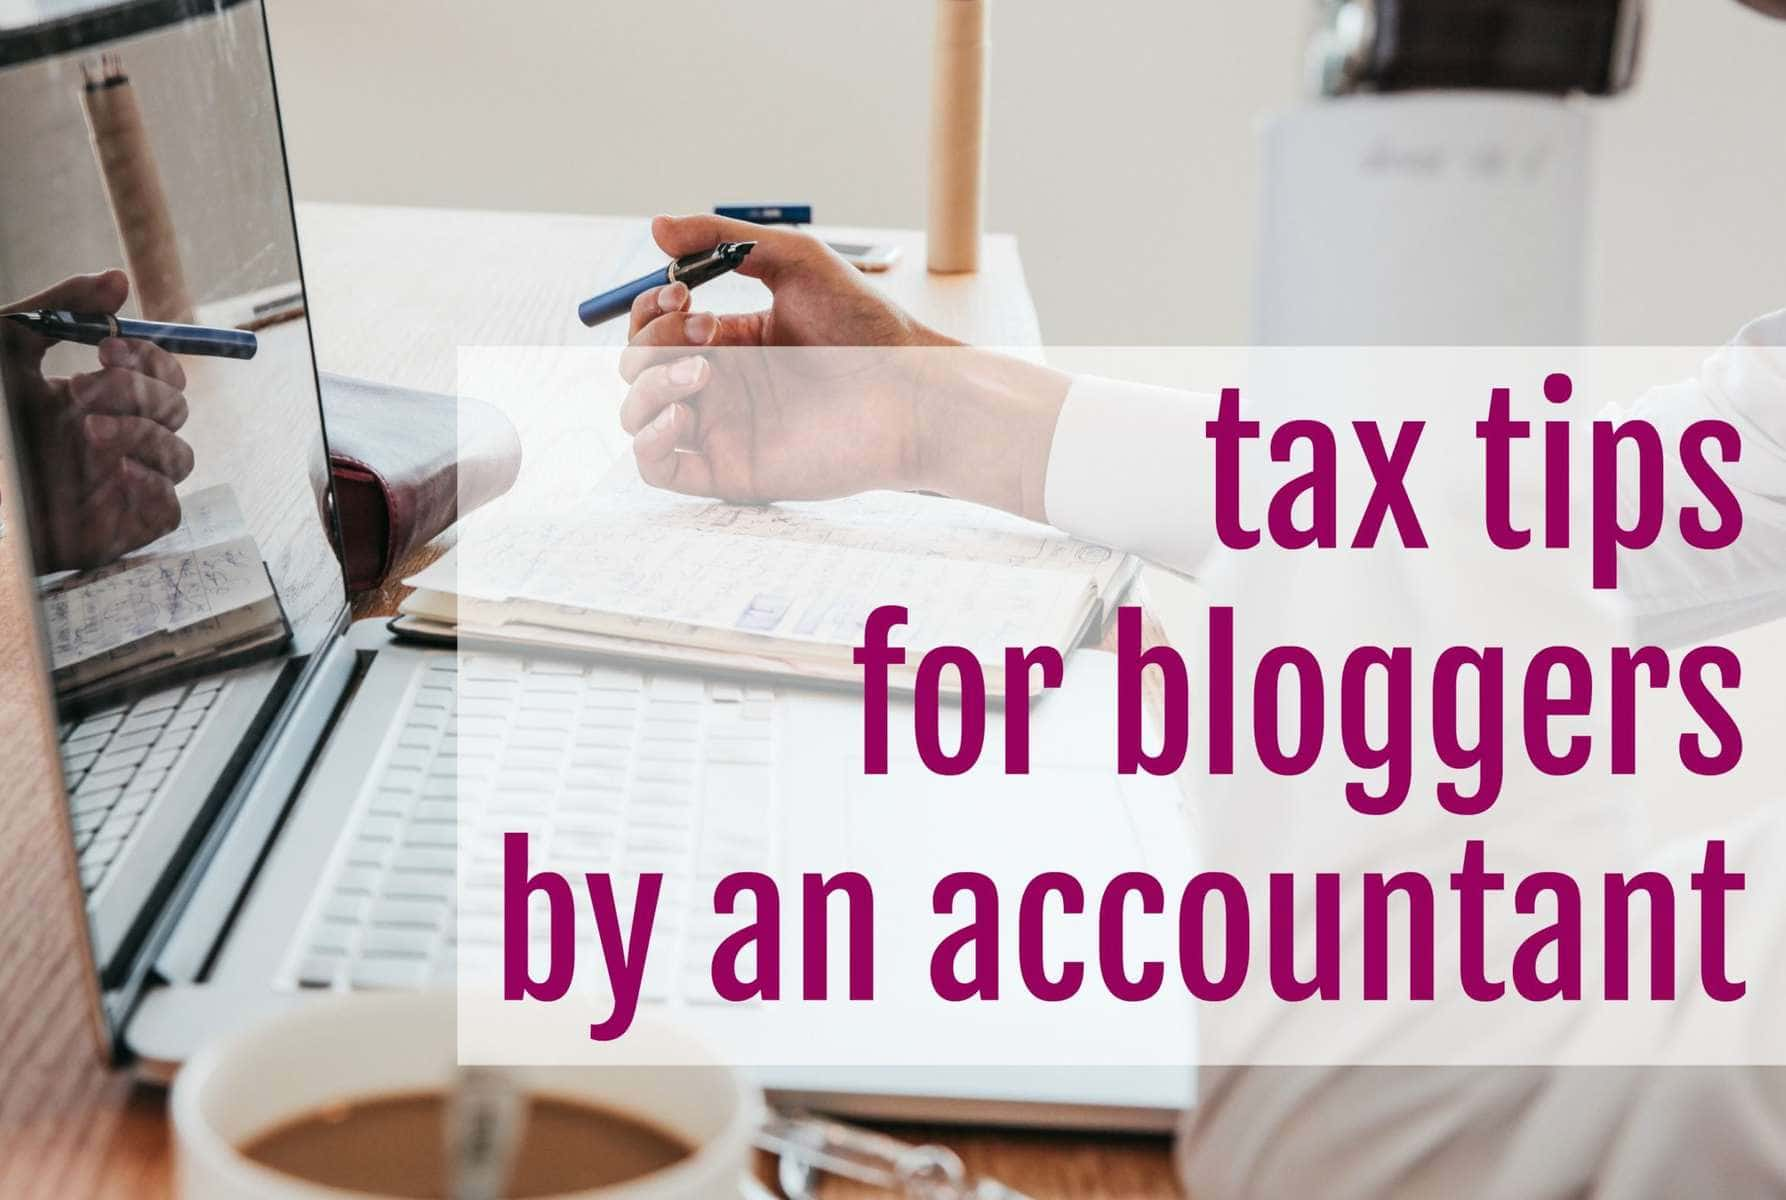 tax tips for bloggers by an accountant - Wardrobe Oxygen